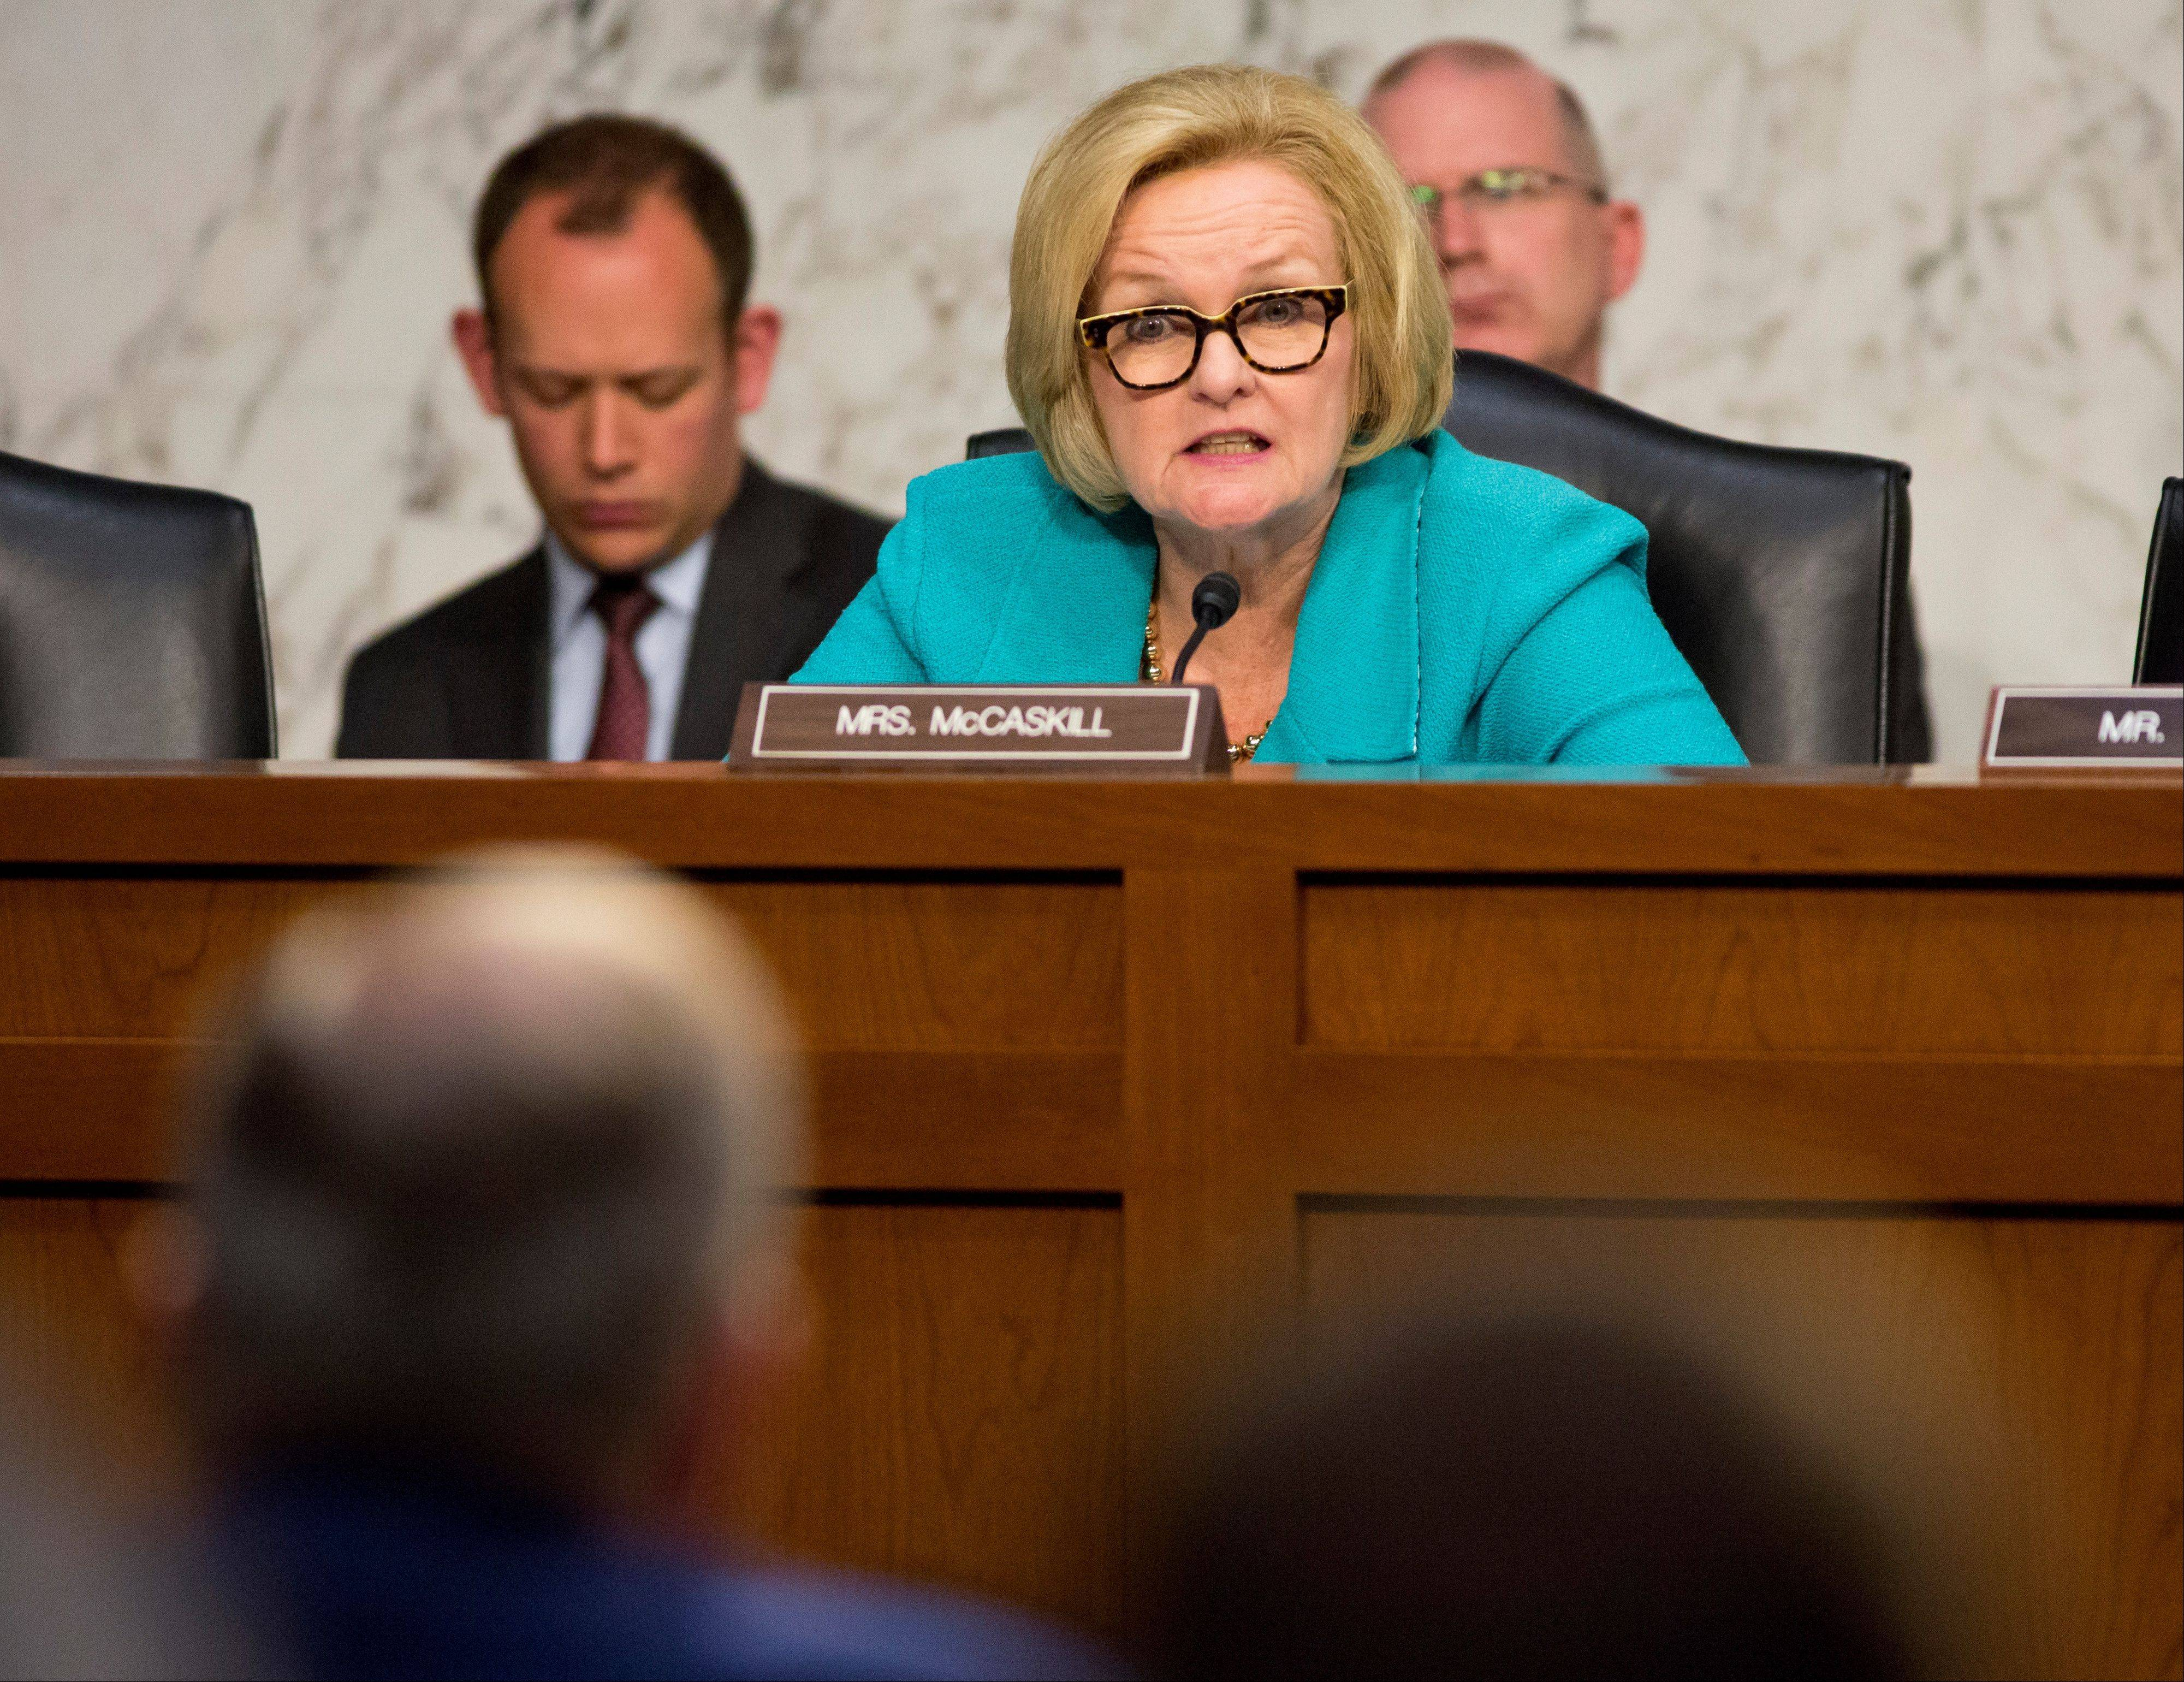 Sen. Claire McCaskill, D-Mo., questions top officials of the Air Force, Secretary of the Air Force Michael B. Donley, and Air Force Chief of Staff Gen. Mark A. Welsh III, about how they are dealing with the controversy over sexual assaults and how the military justice system handles it, during a Senate Armed Services Committee hearing on Capitol Hill in Washington, Tuesday, May 7, 2013.